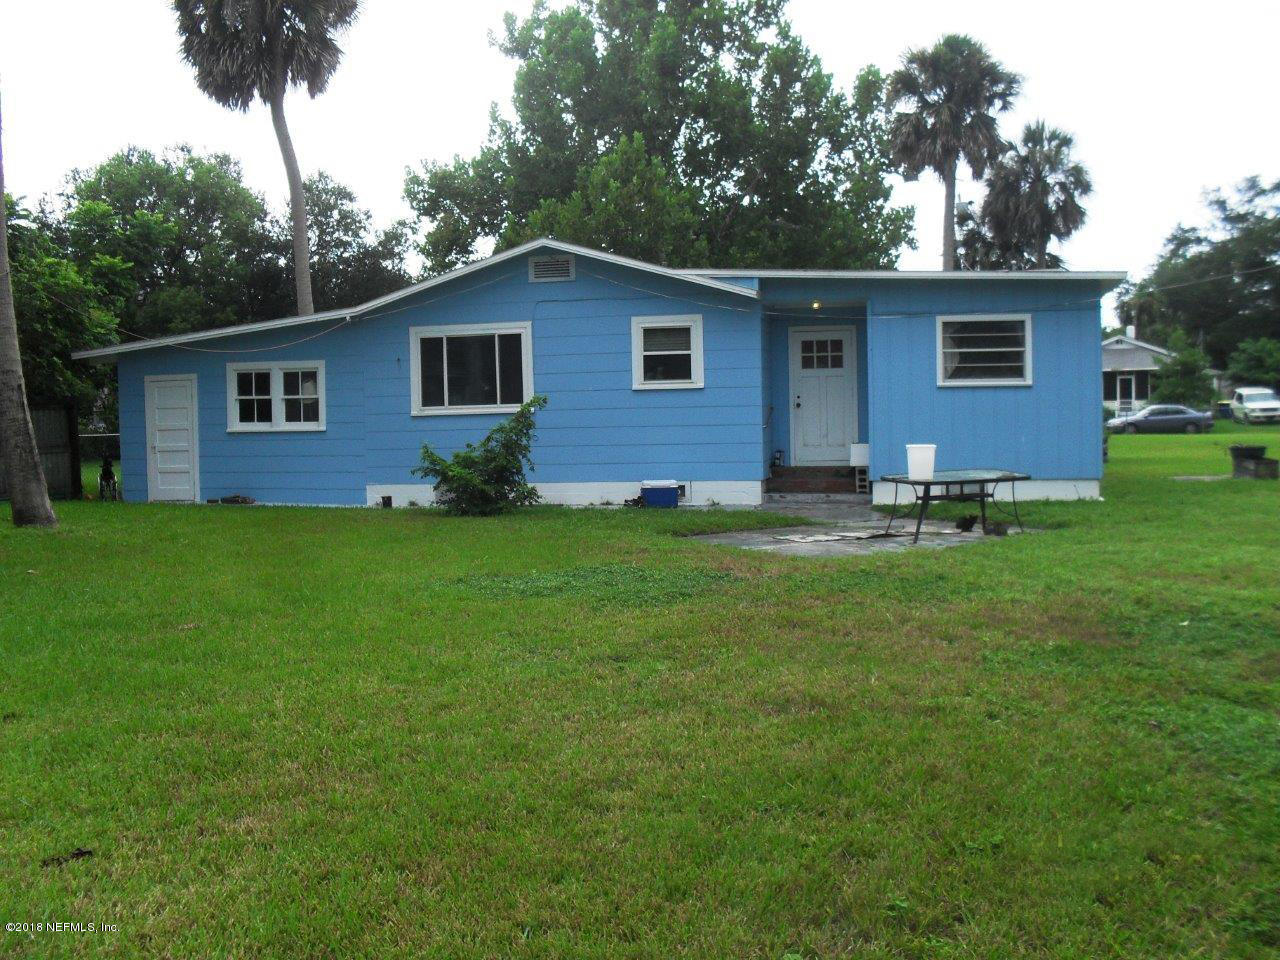 1316 PALMER, JACKSONVILLE, FLORIDA 32233, 3 Bedrooms Bedrooms, ,2 BathroomsBathrooms,Residential - single family,For sale,PALMER,952712